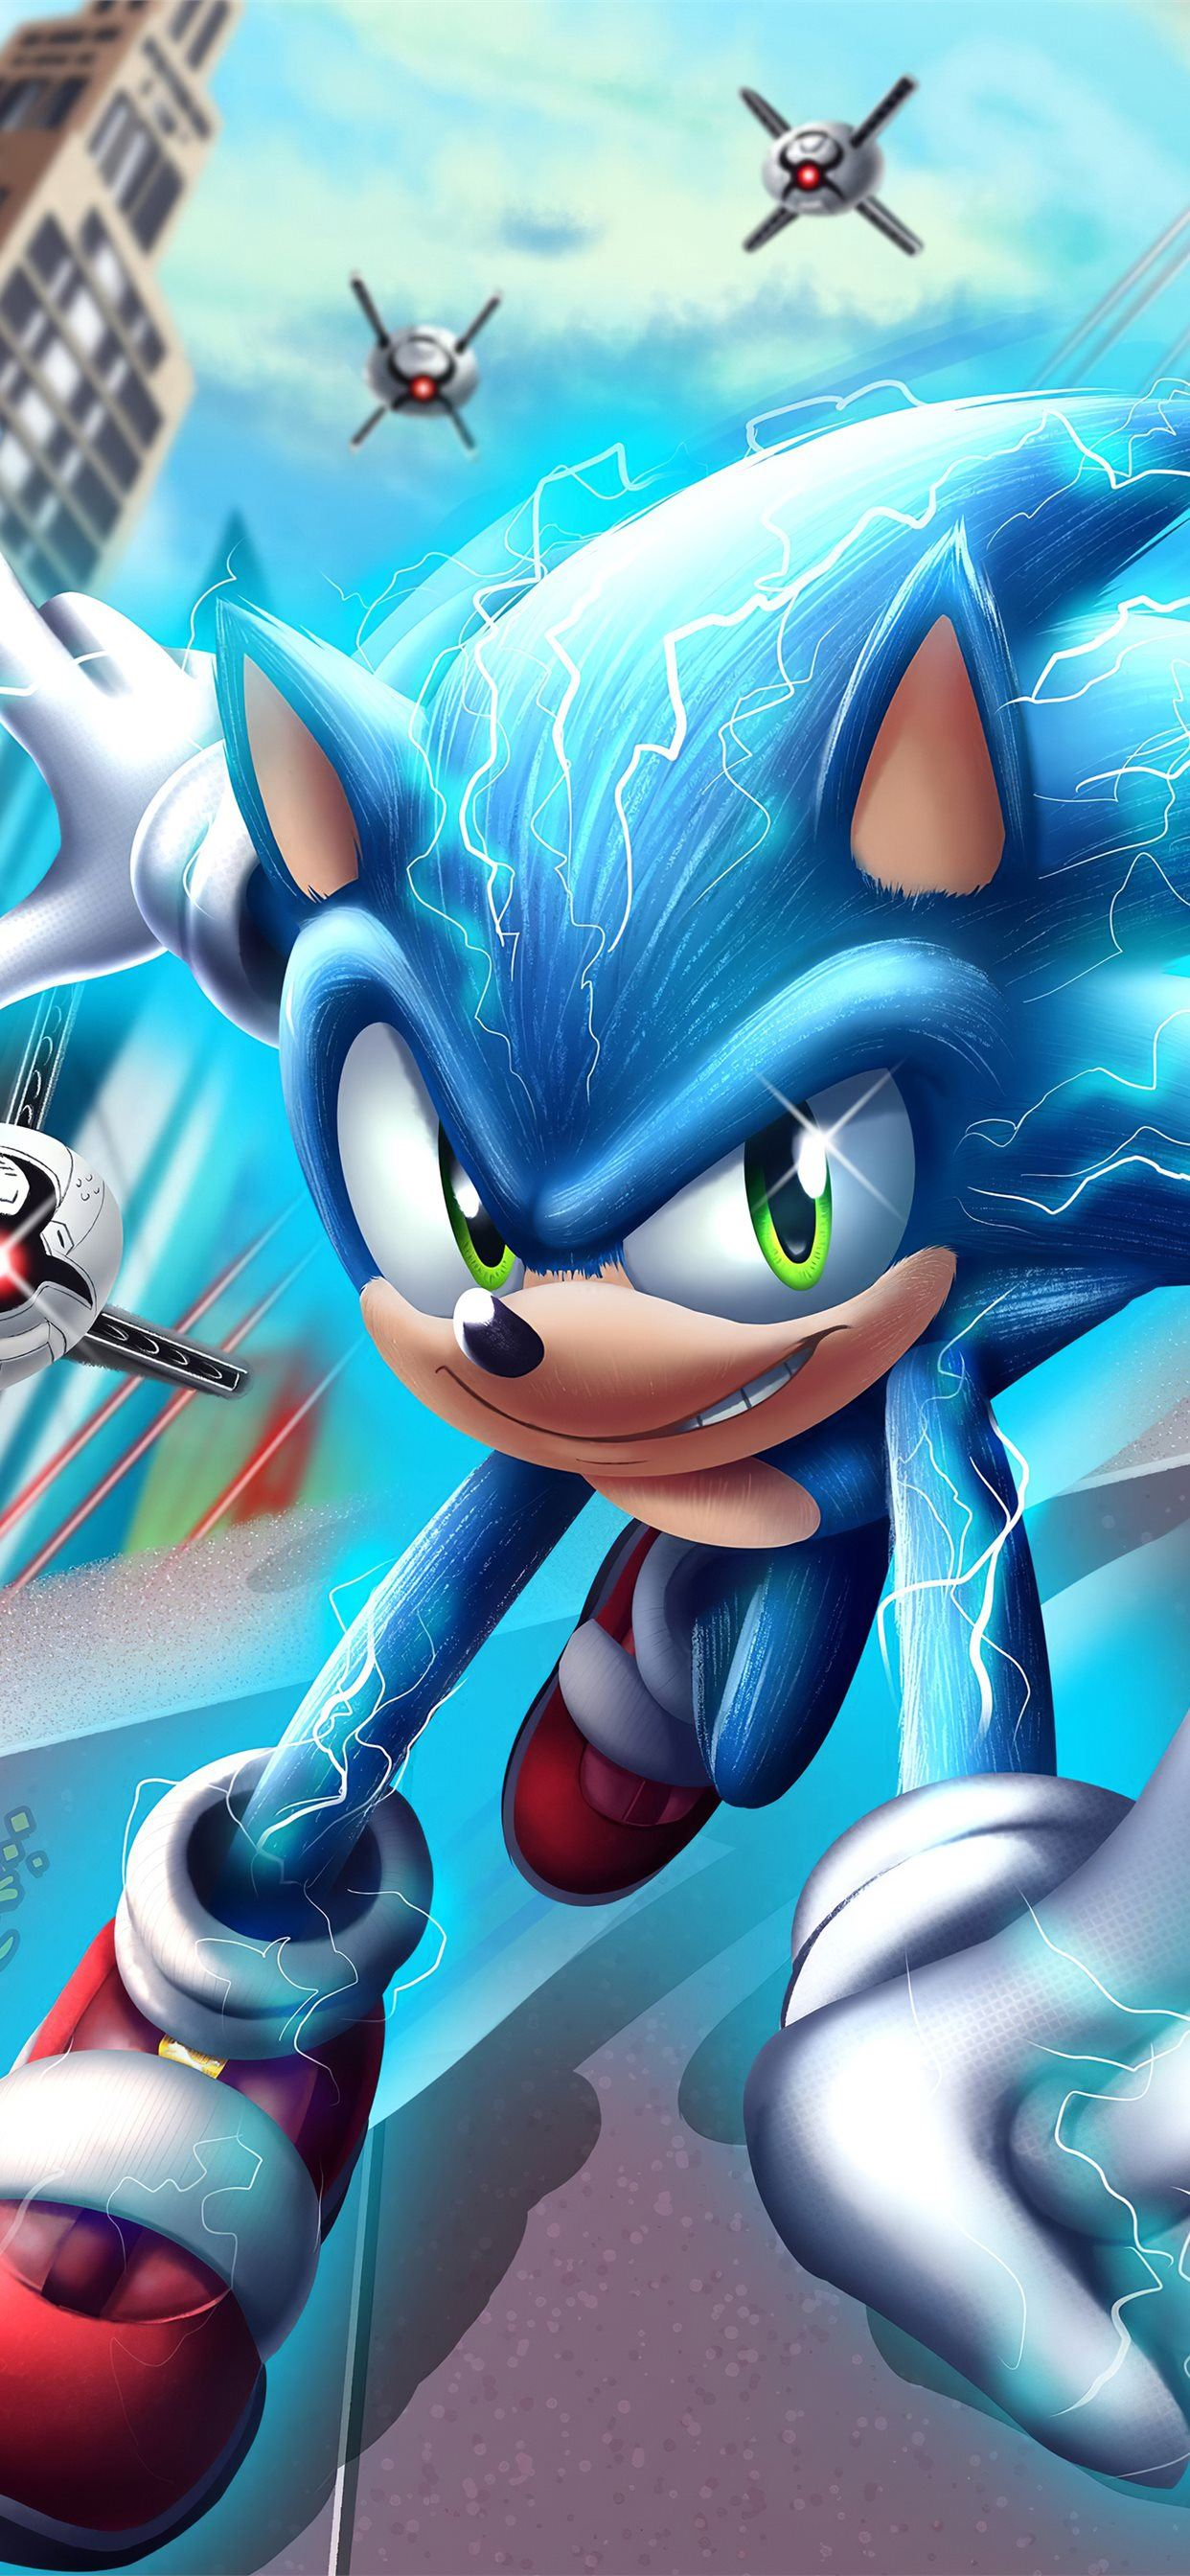 Sonic The Hedgehog 4k 2020 Iphone 11 Wallpapers Free Download